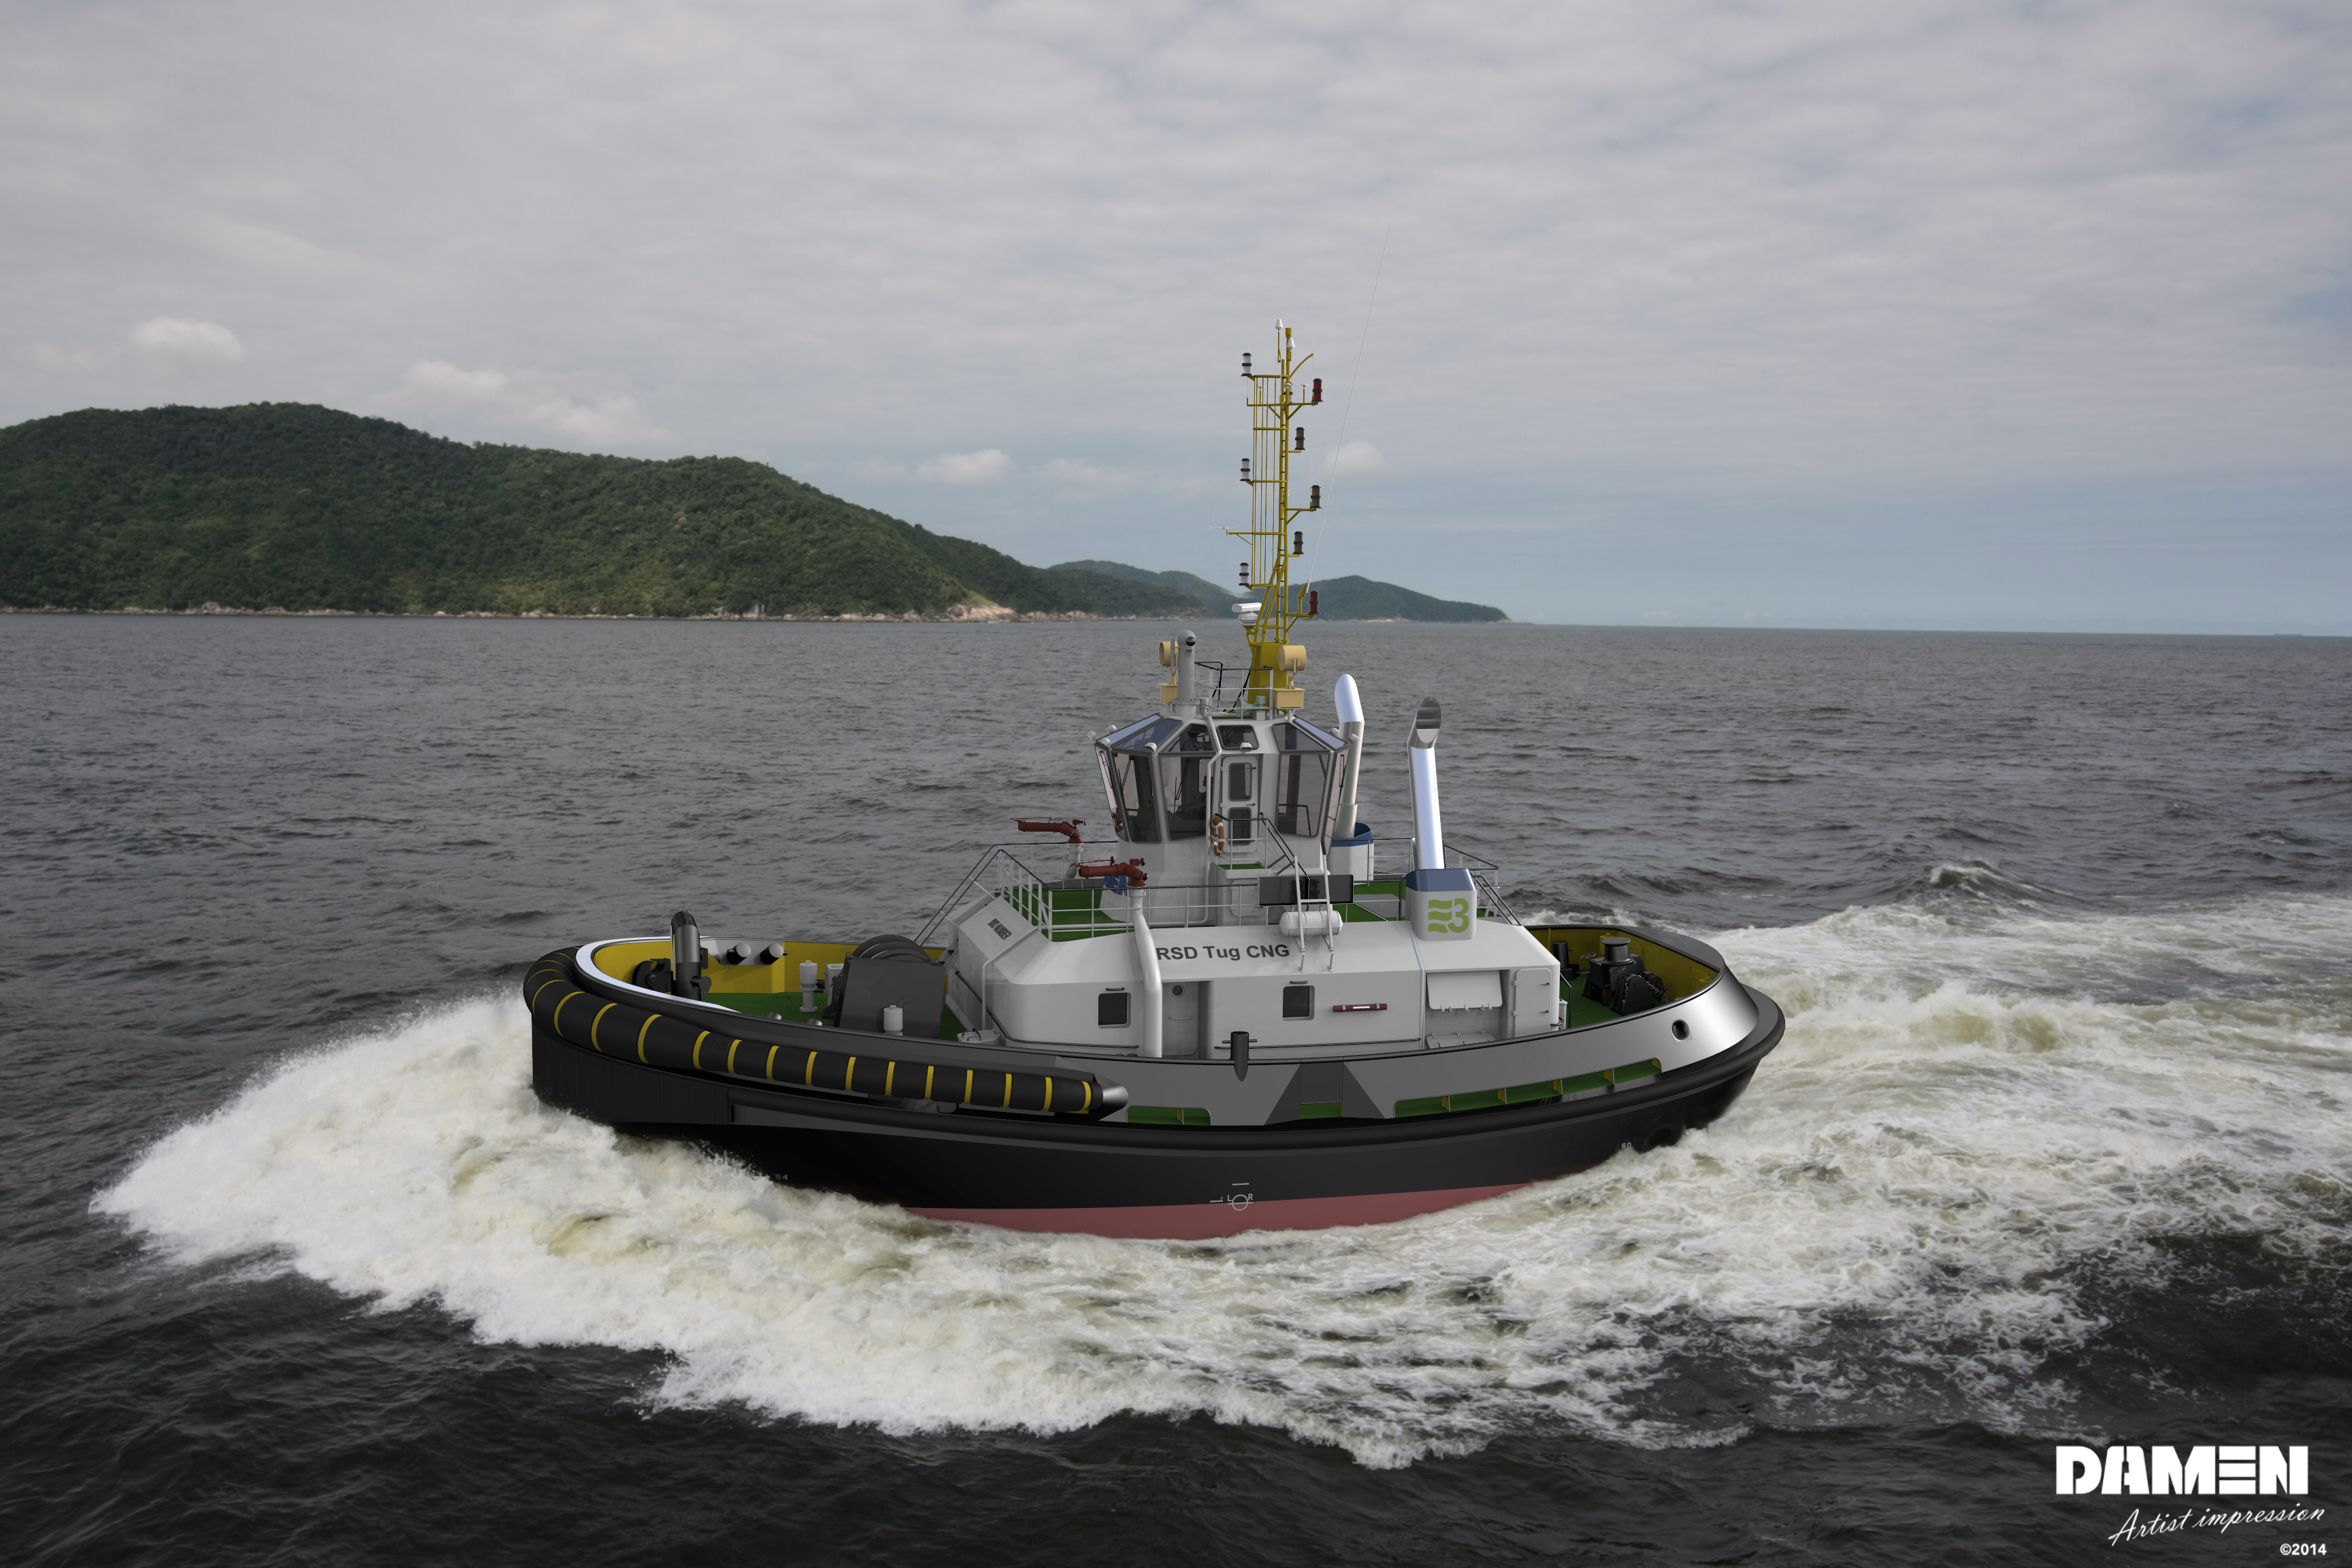 Damen, MTU and SVITZER will launch the  world's first RSD CNG tug in 2016